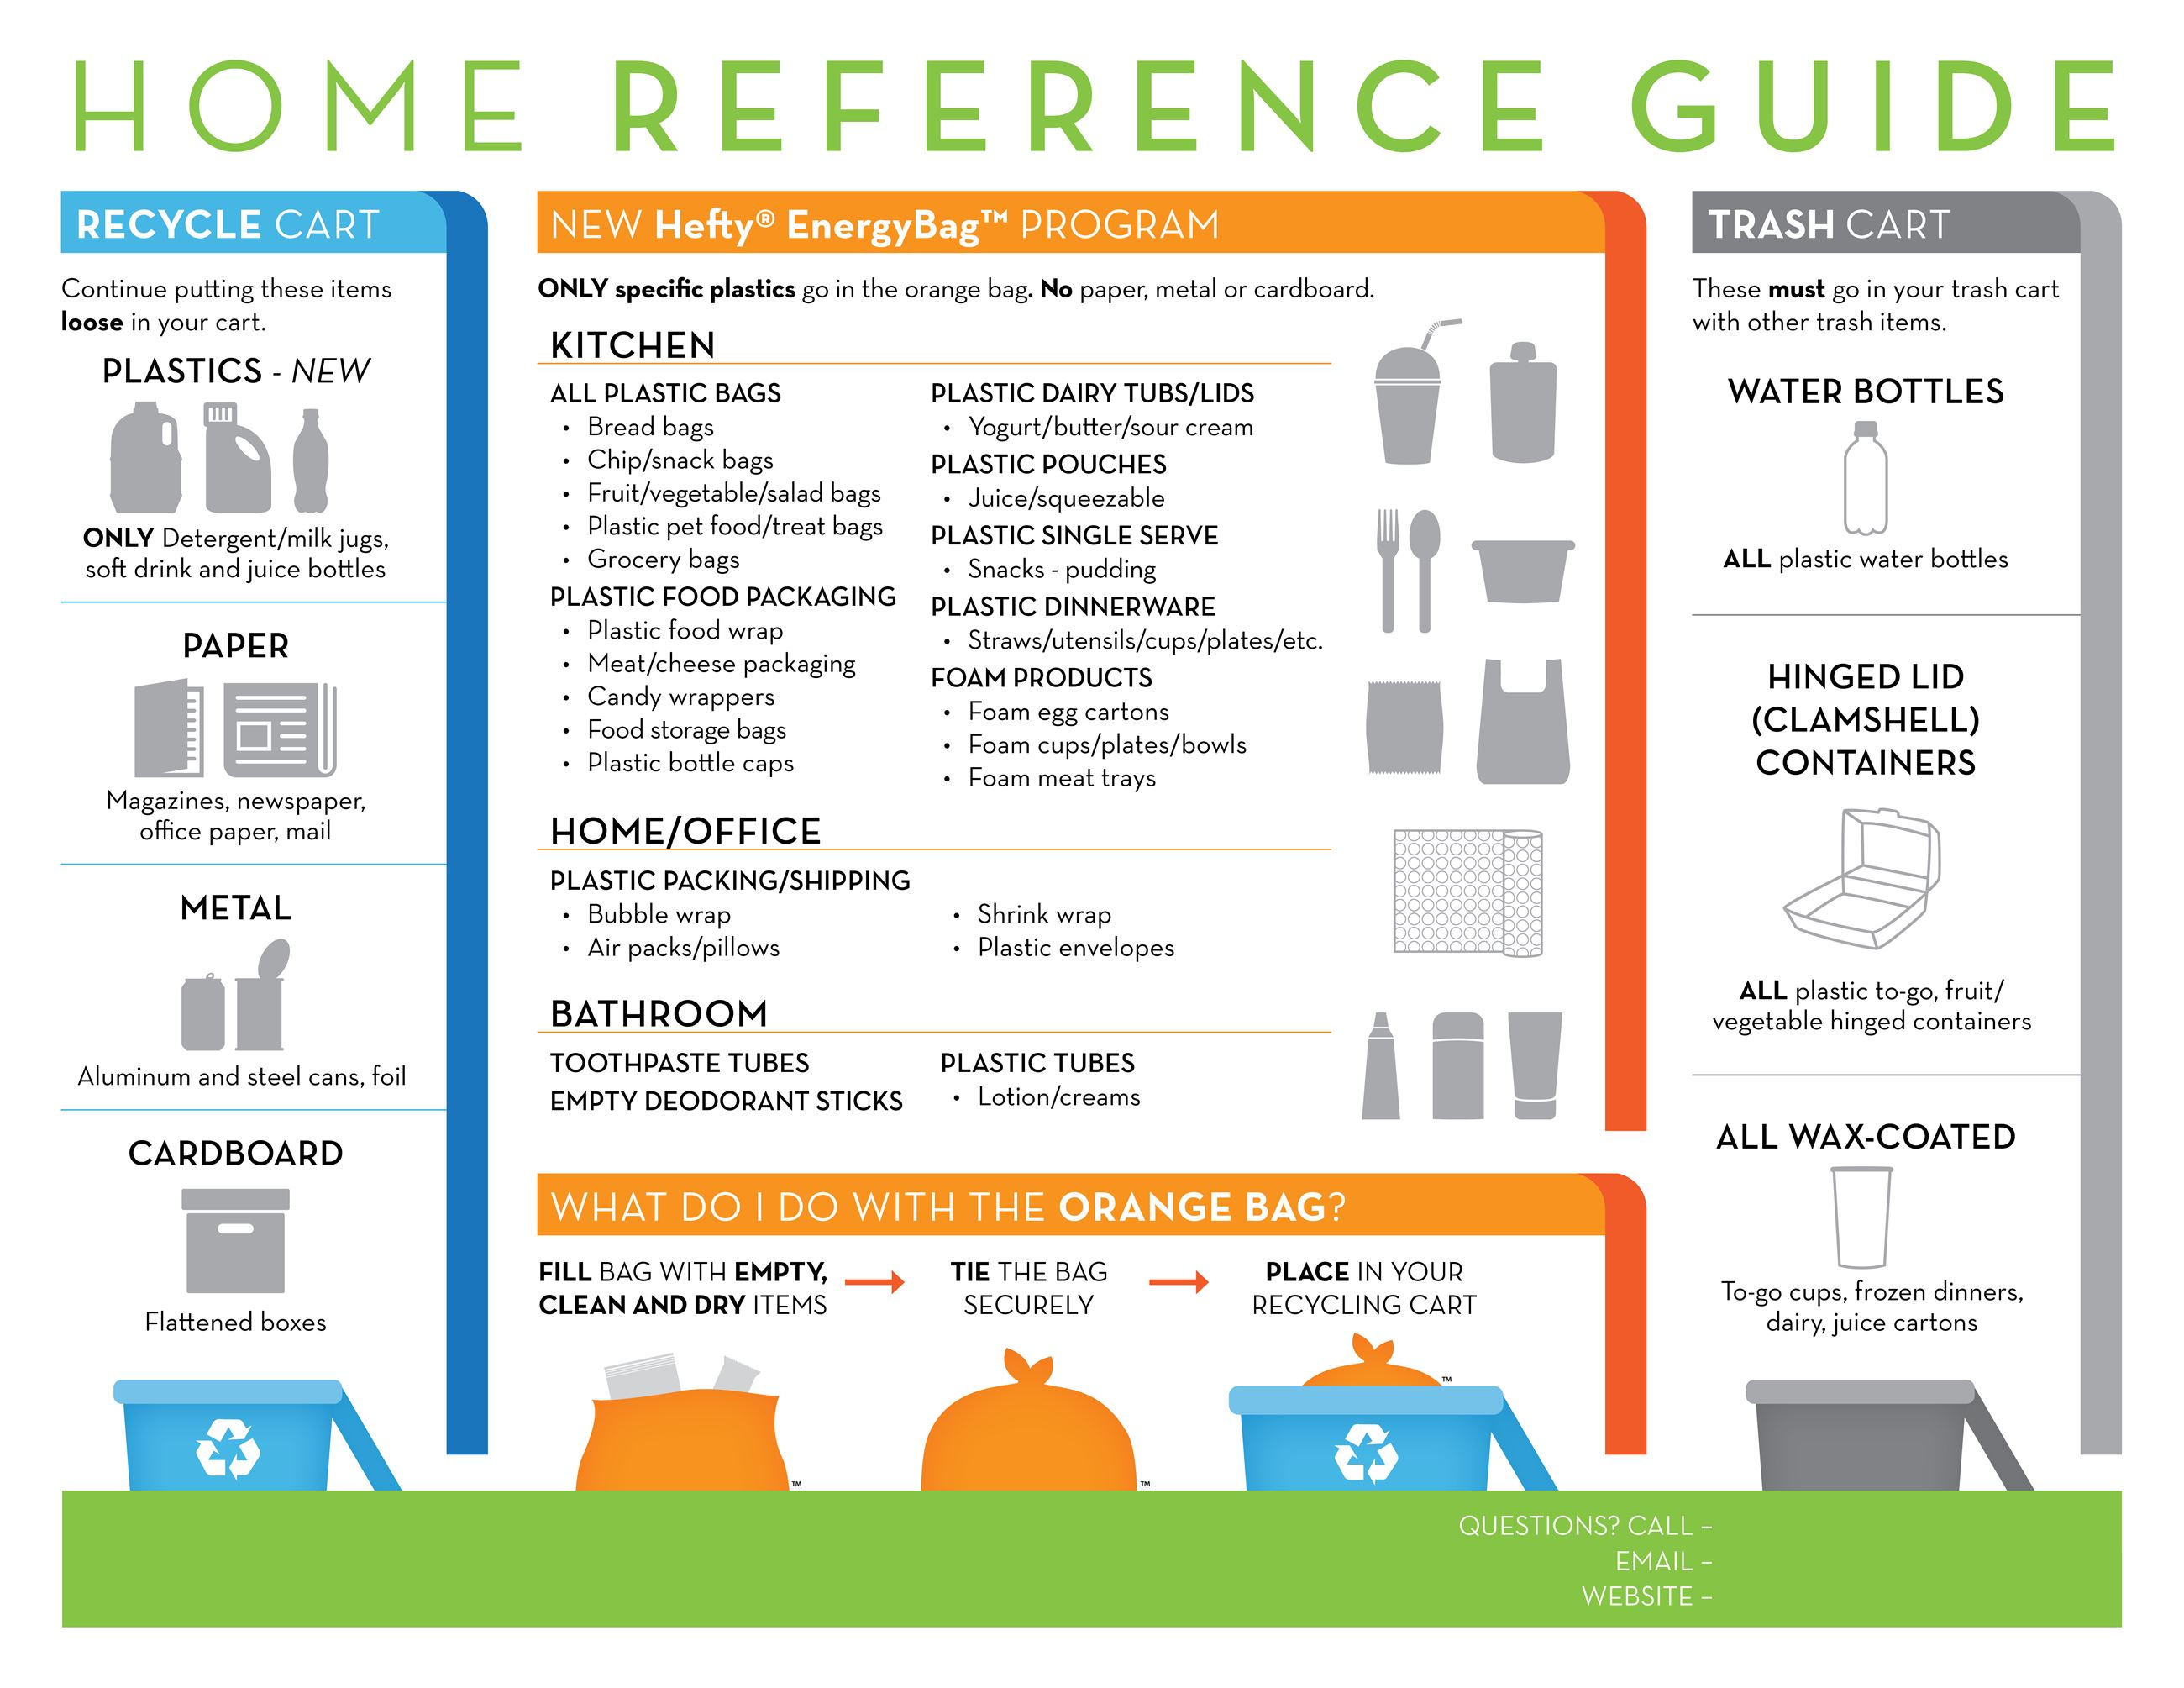 Recycling reference guide